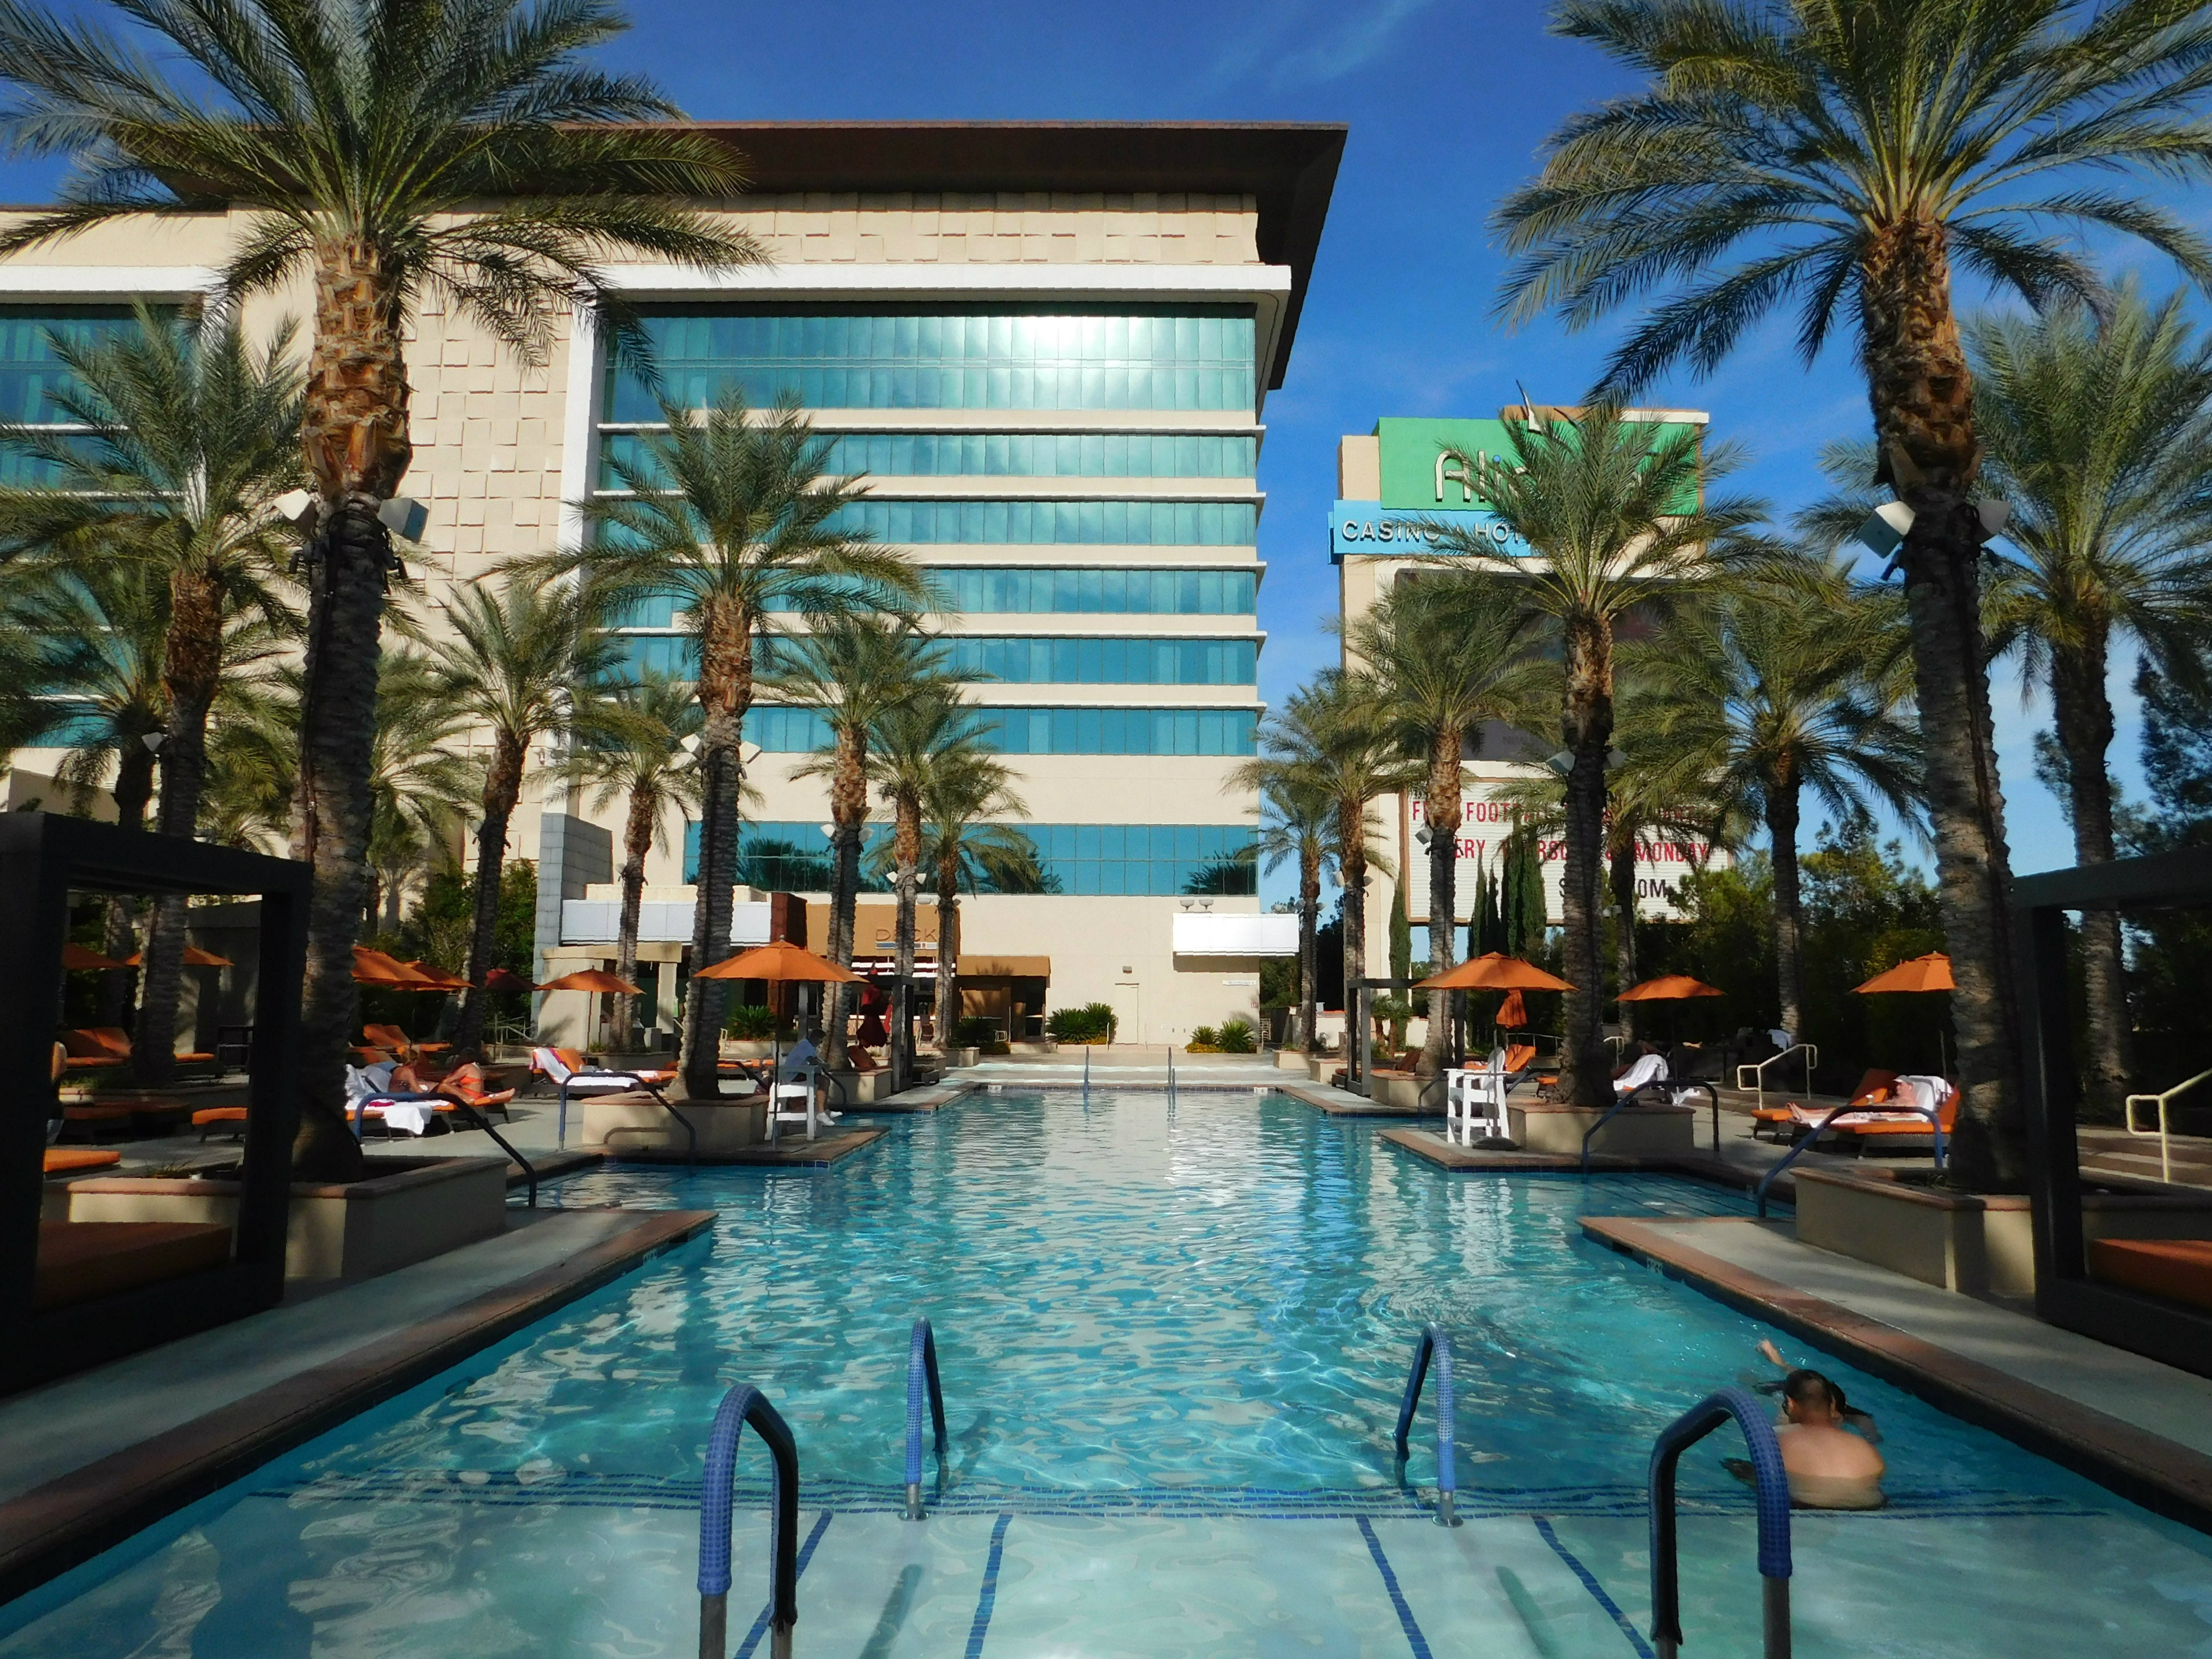 Relaxing by the pool at Aliante in Las Vegas during Month Twenty Eight of Digital Nomad Life